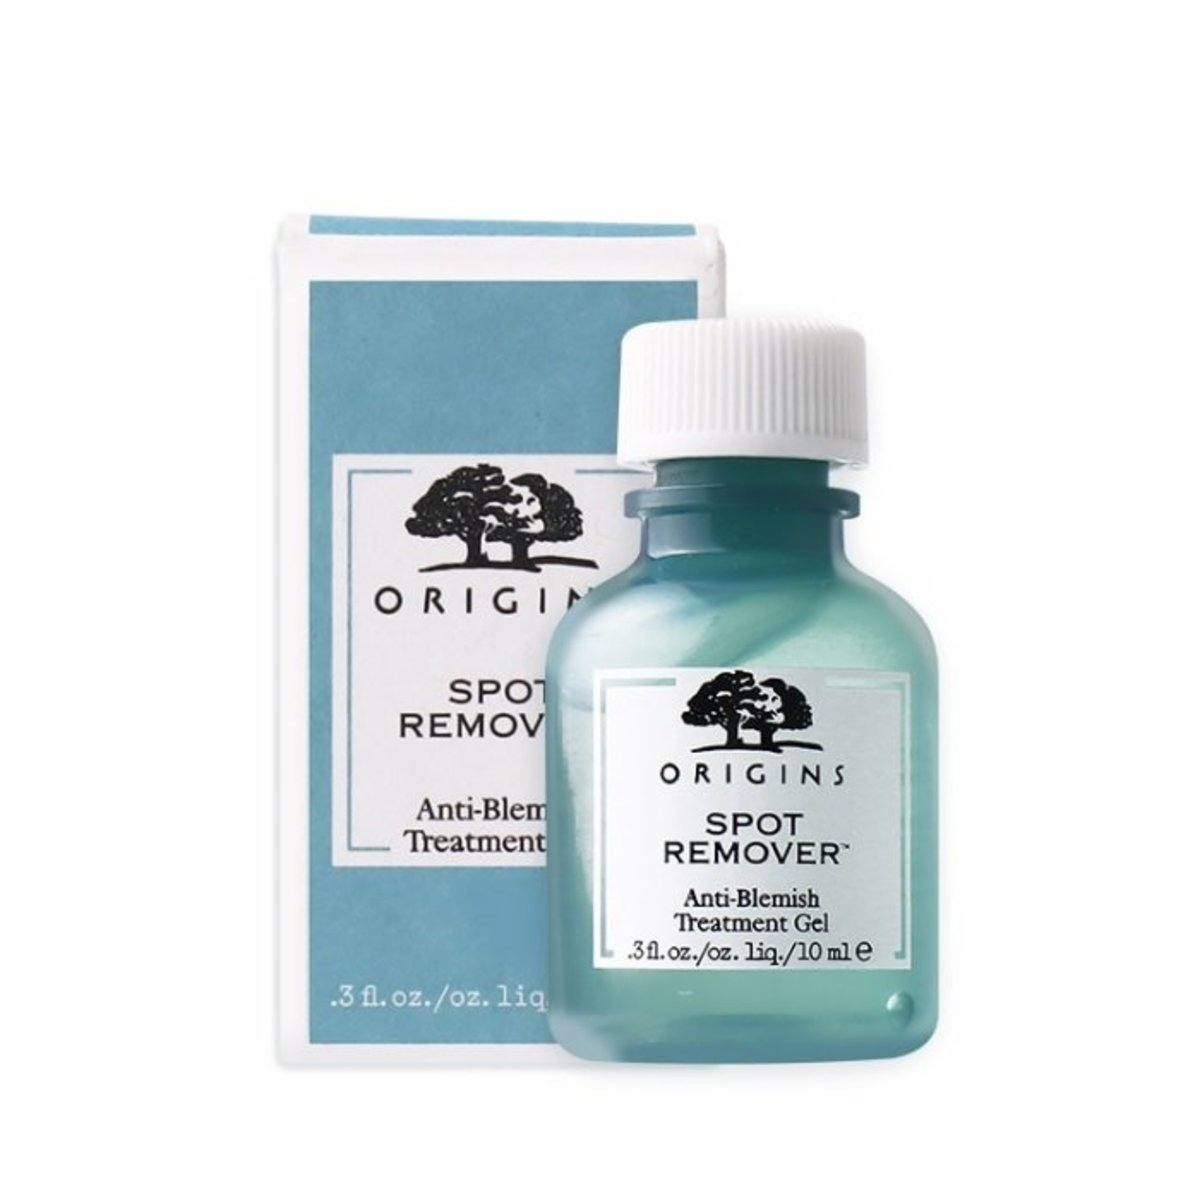 Spot Remover™ Acne Treatment Gel 10ml (Parallel Import)